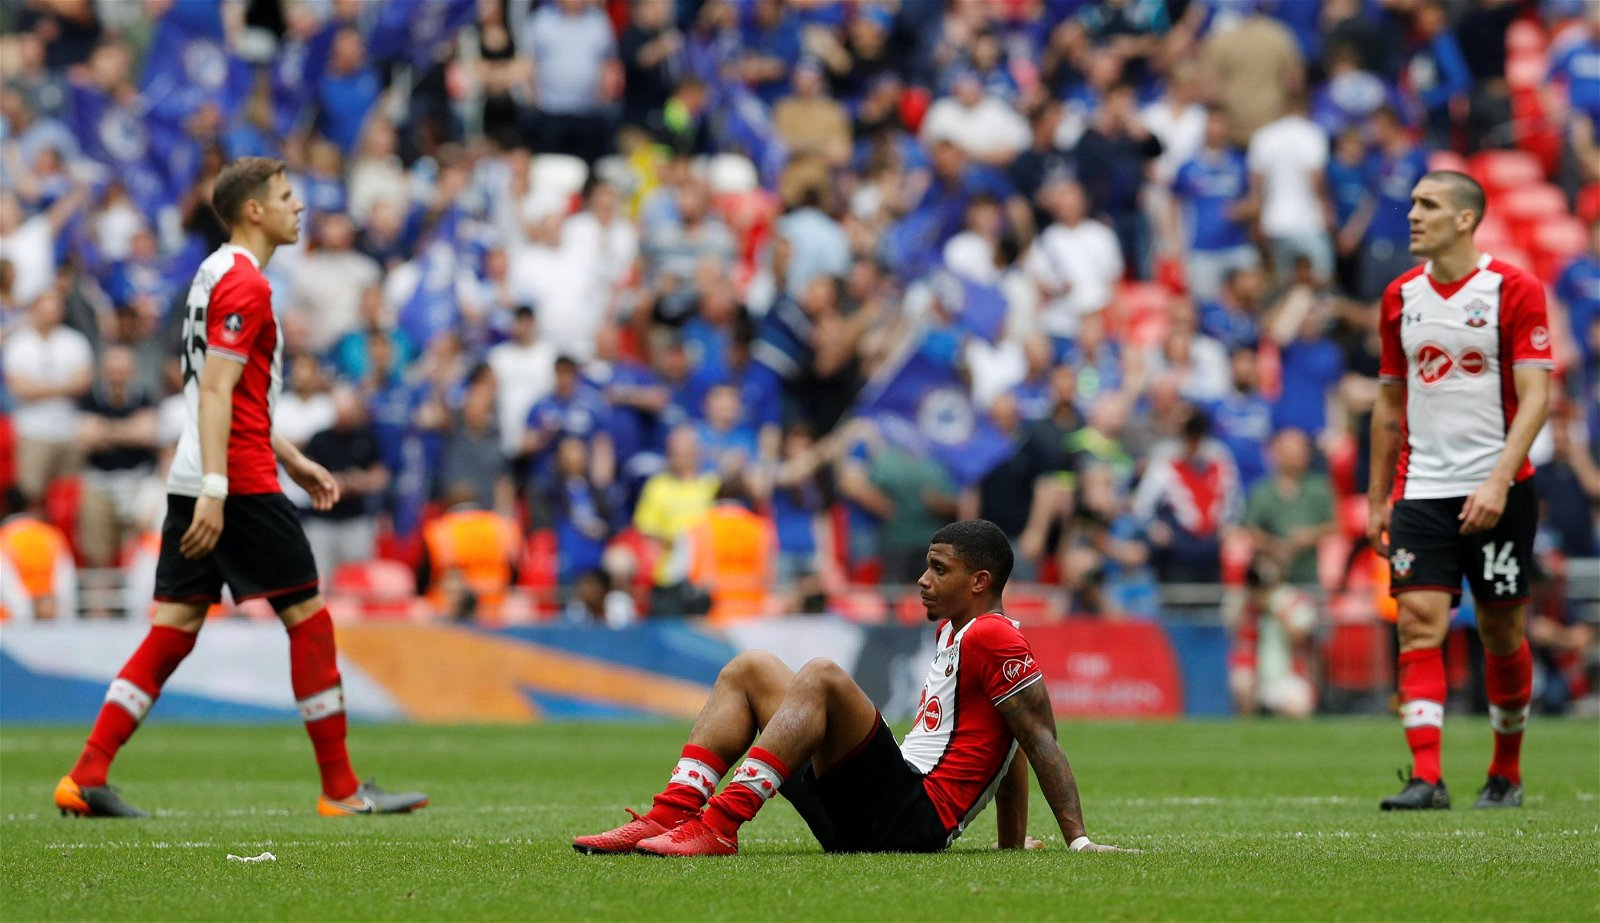 Mario Lemina sits on ground after FA Cup semi-final defeat